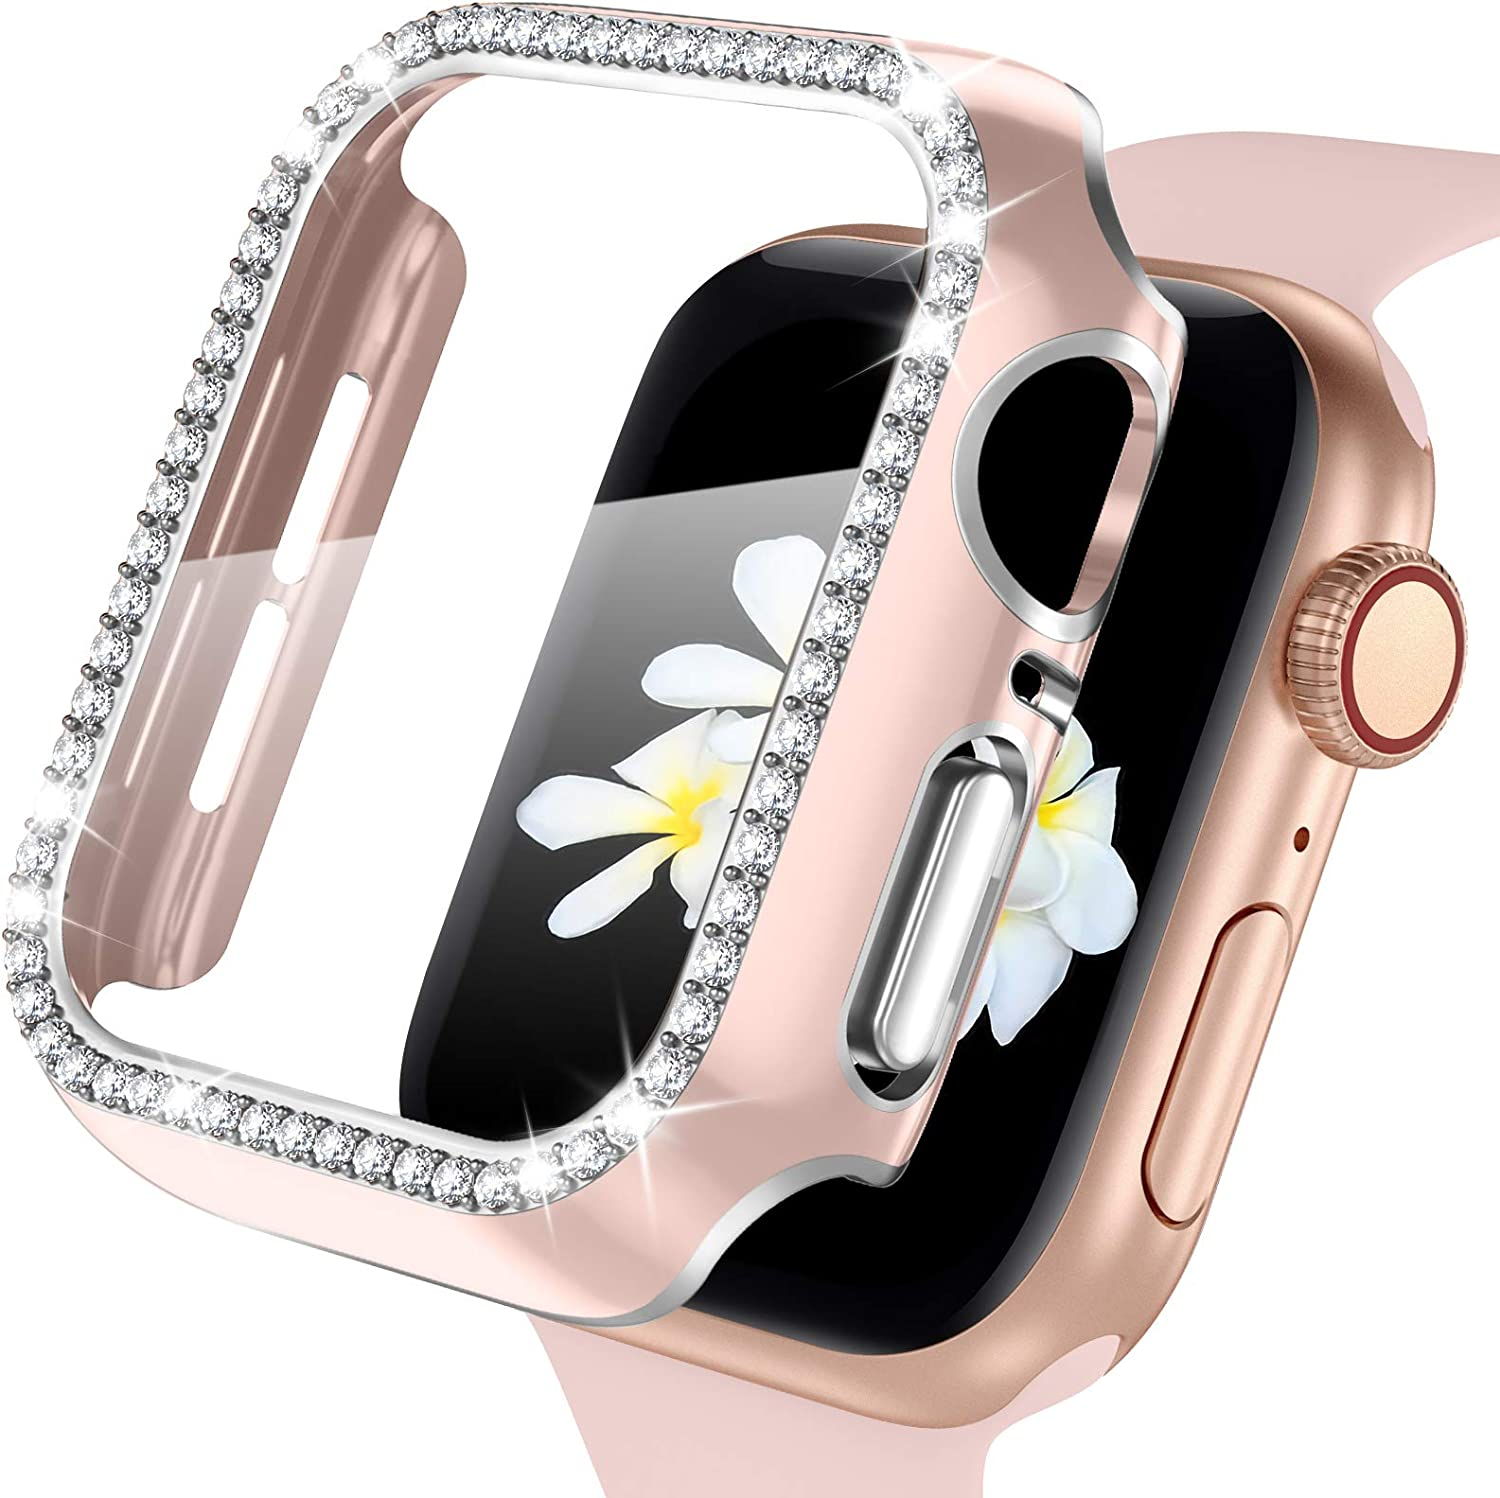 ZAROTO for Apple Watch case 40mm with Tempered Glass Screen Protector for iwatch Series 6/5/4/SE, Bling Crystal Diamond Rhinestone Bumper Full Cover Protective Case Women Girls 40mm Pink